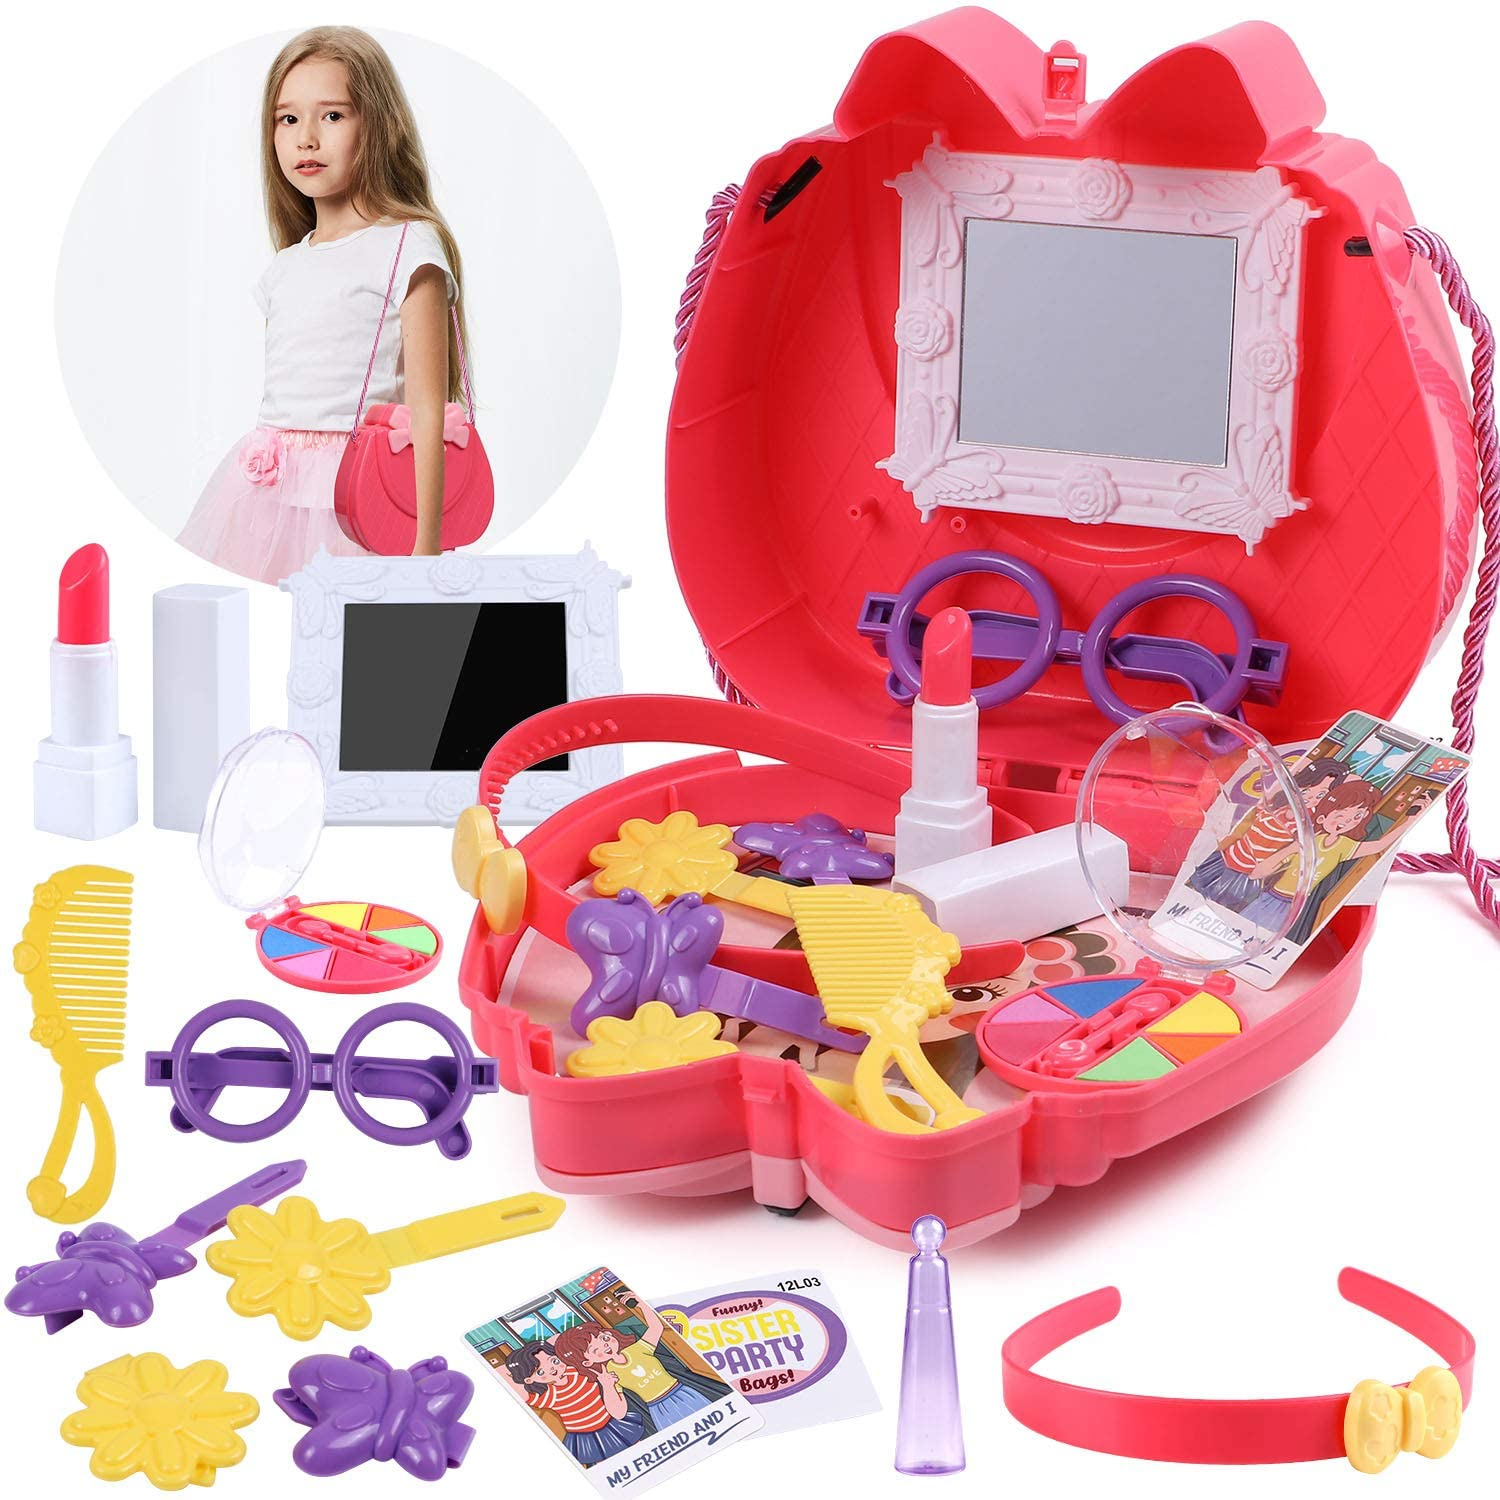 Latocos Pretend Makeup for Girls Play Make Up Kit with Mirror Comb Makeup Toy Cosmetic Set Birthday Gifts for Toddlers Kids